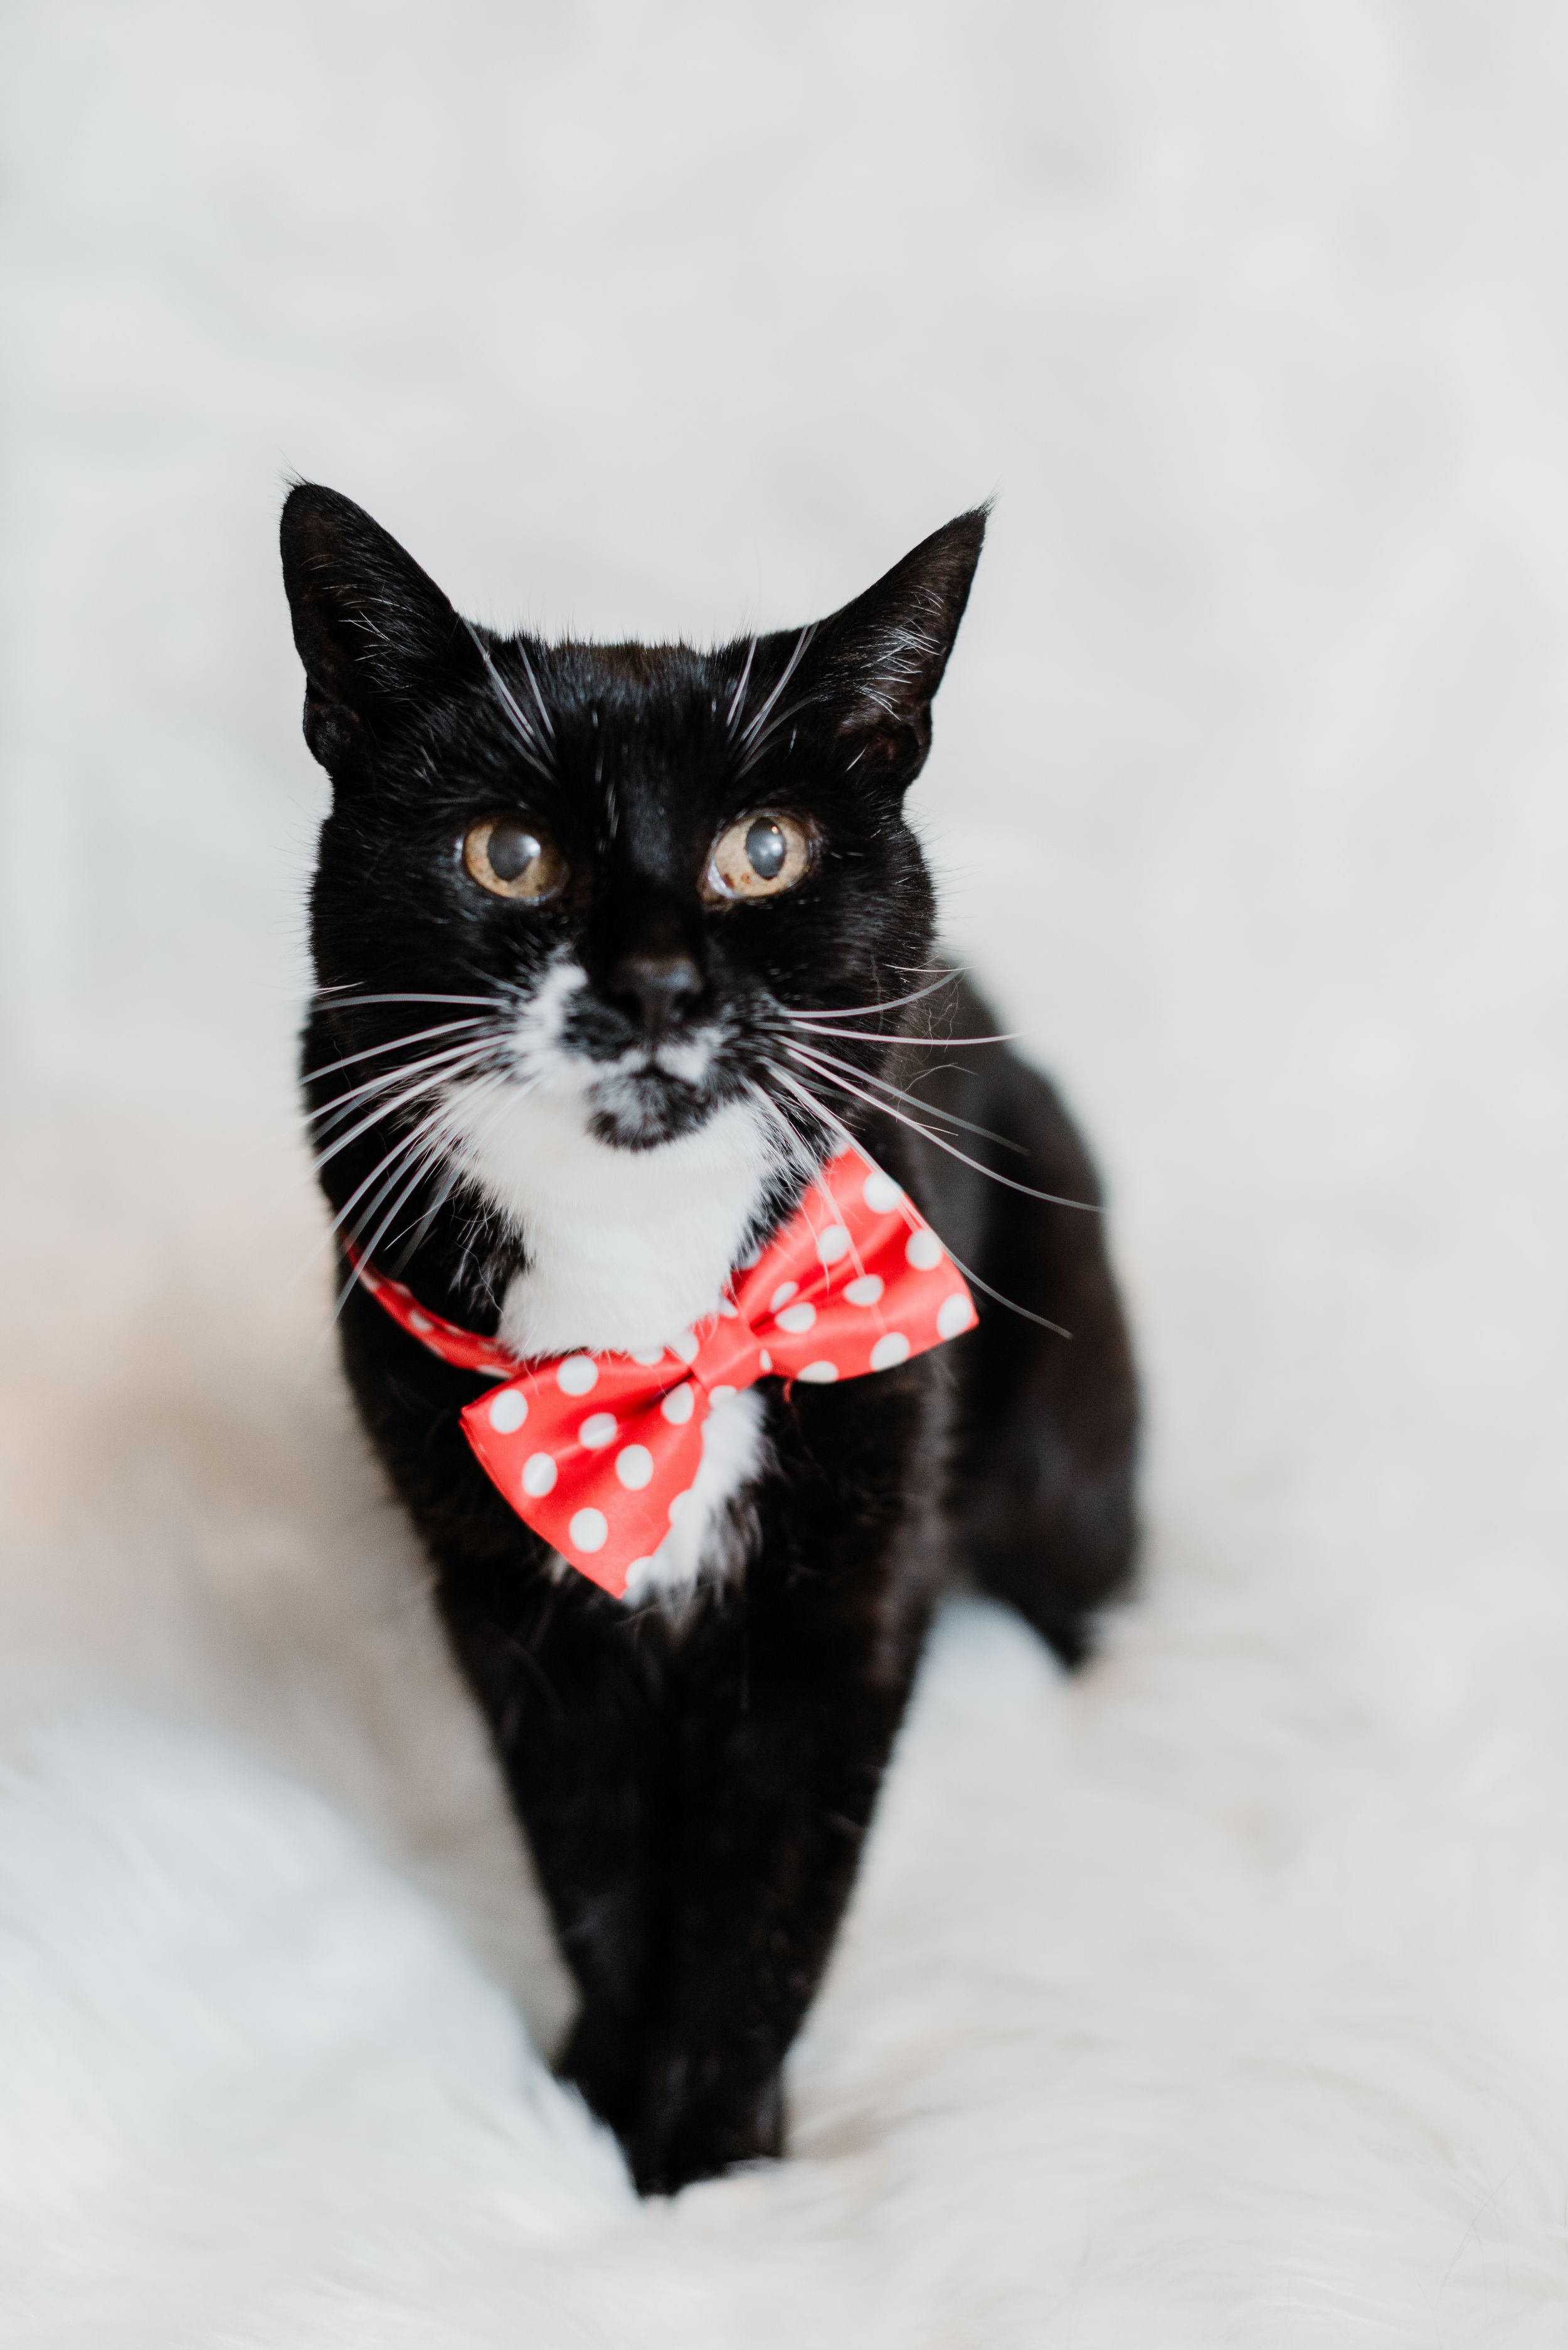 Black and White cat, Cat wearing a bow tie, Sarah Lake Photography